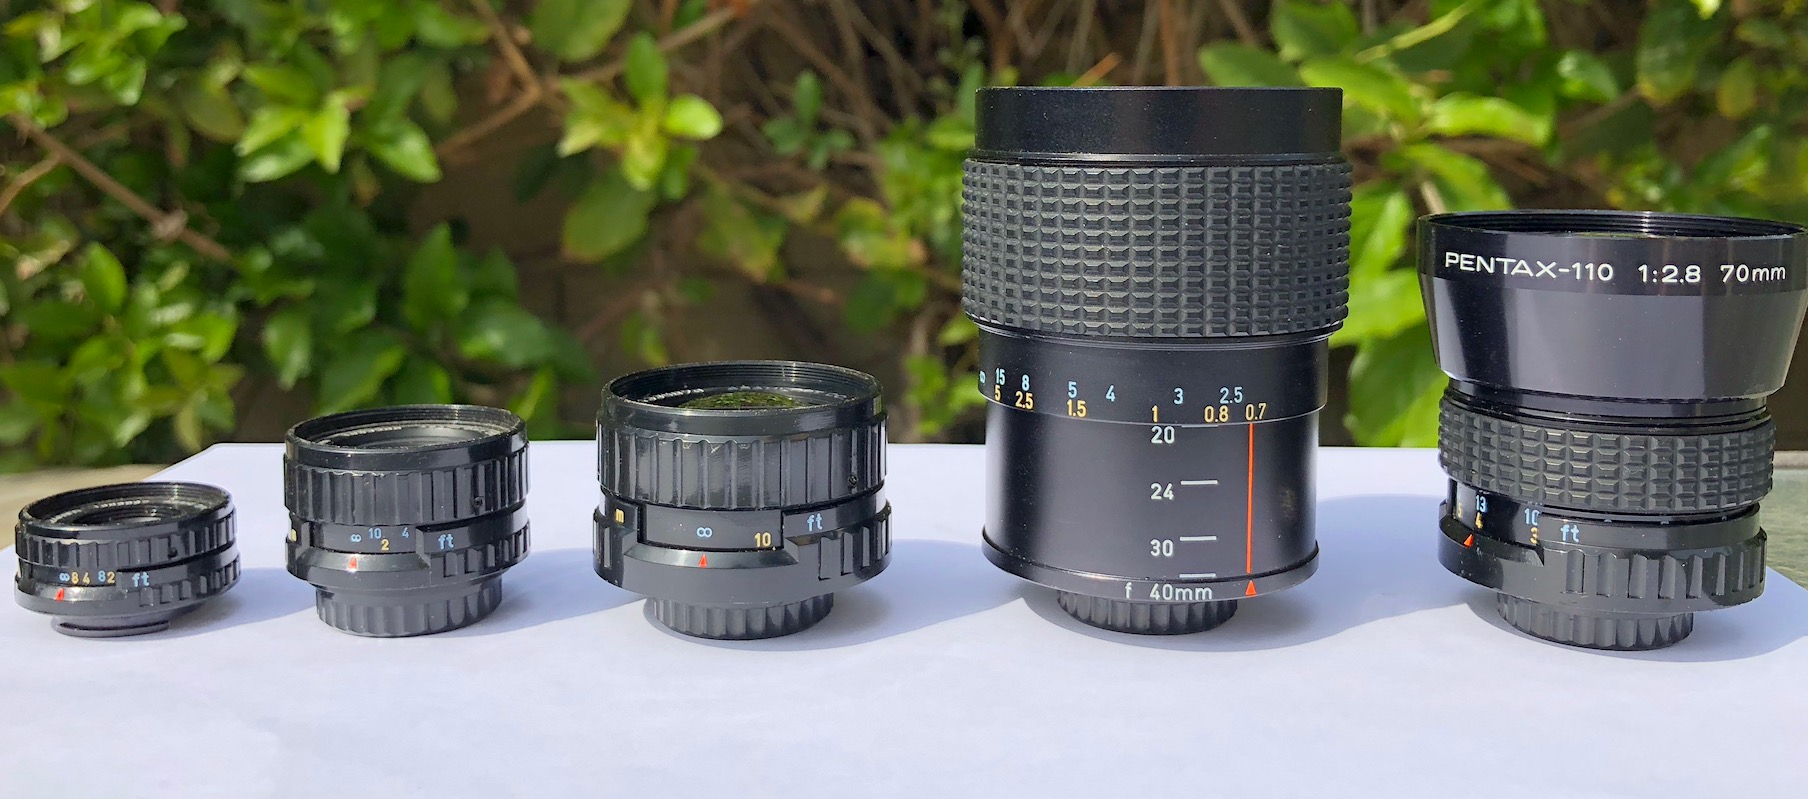 Pentax-110 Subminiature Lenses for Micro4/3